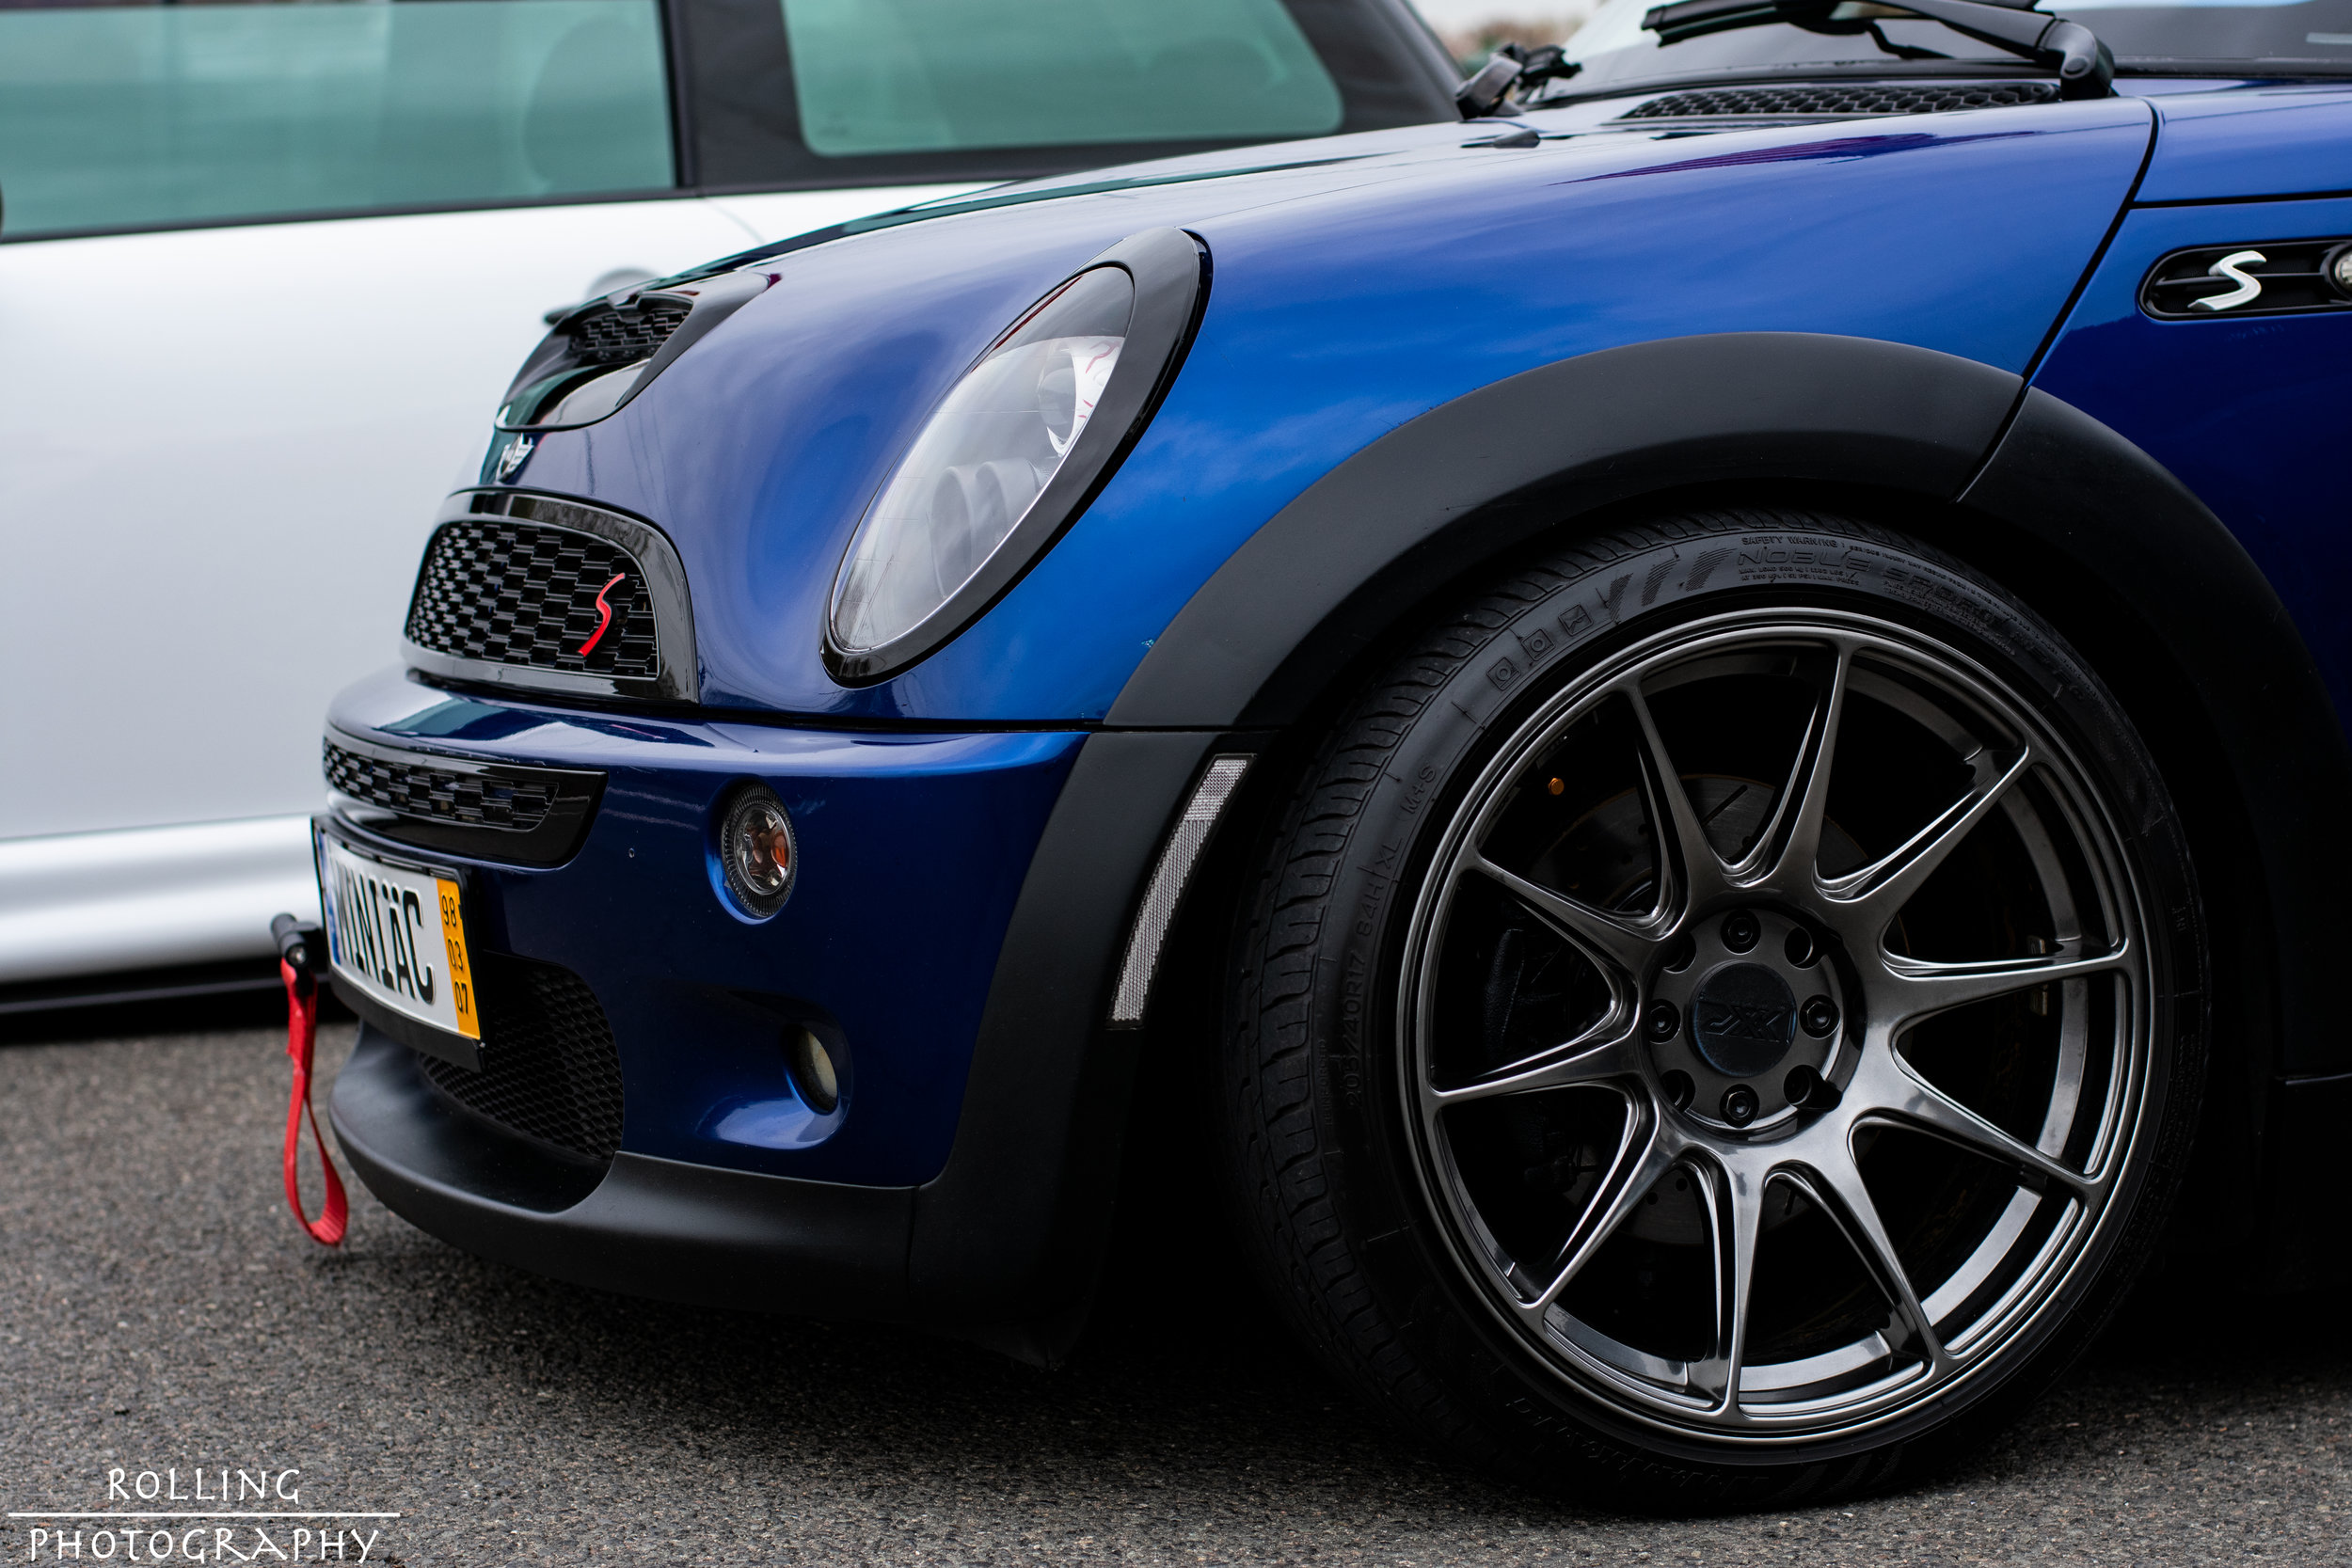 2003 MINI Cooper S (R53)  @blue_coop_r53   ISO 200, 50mm, f / 4.5 Shutter Speed 1/320